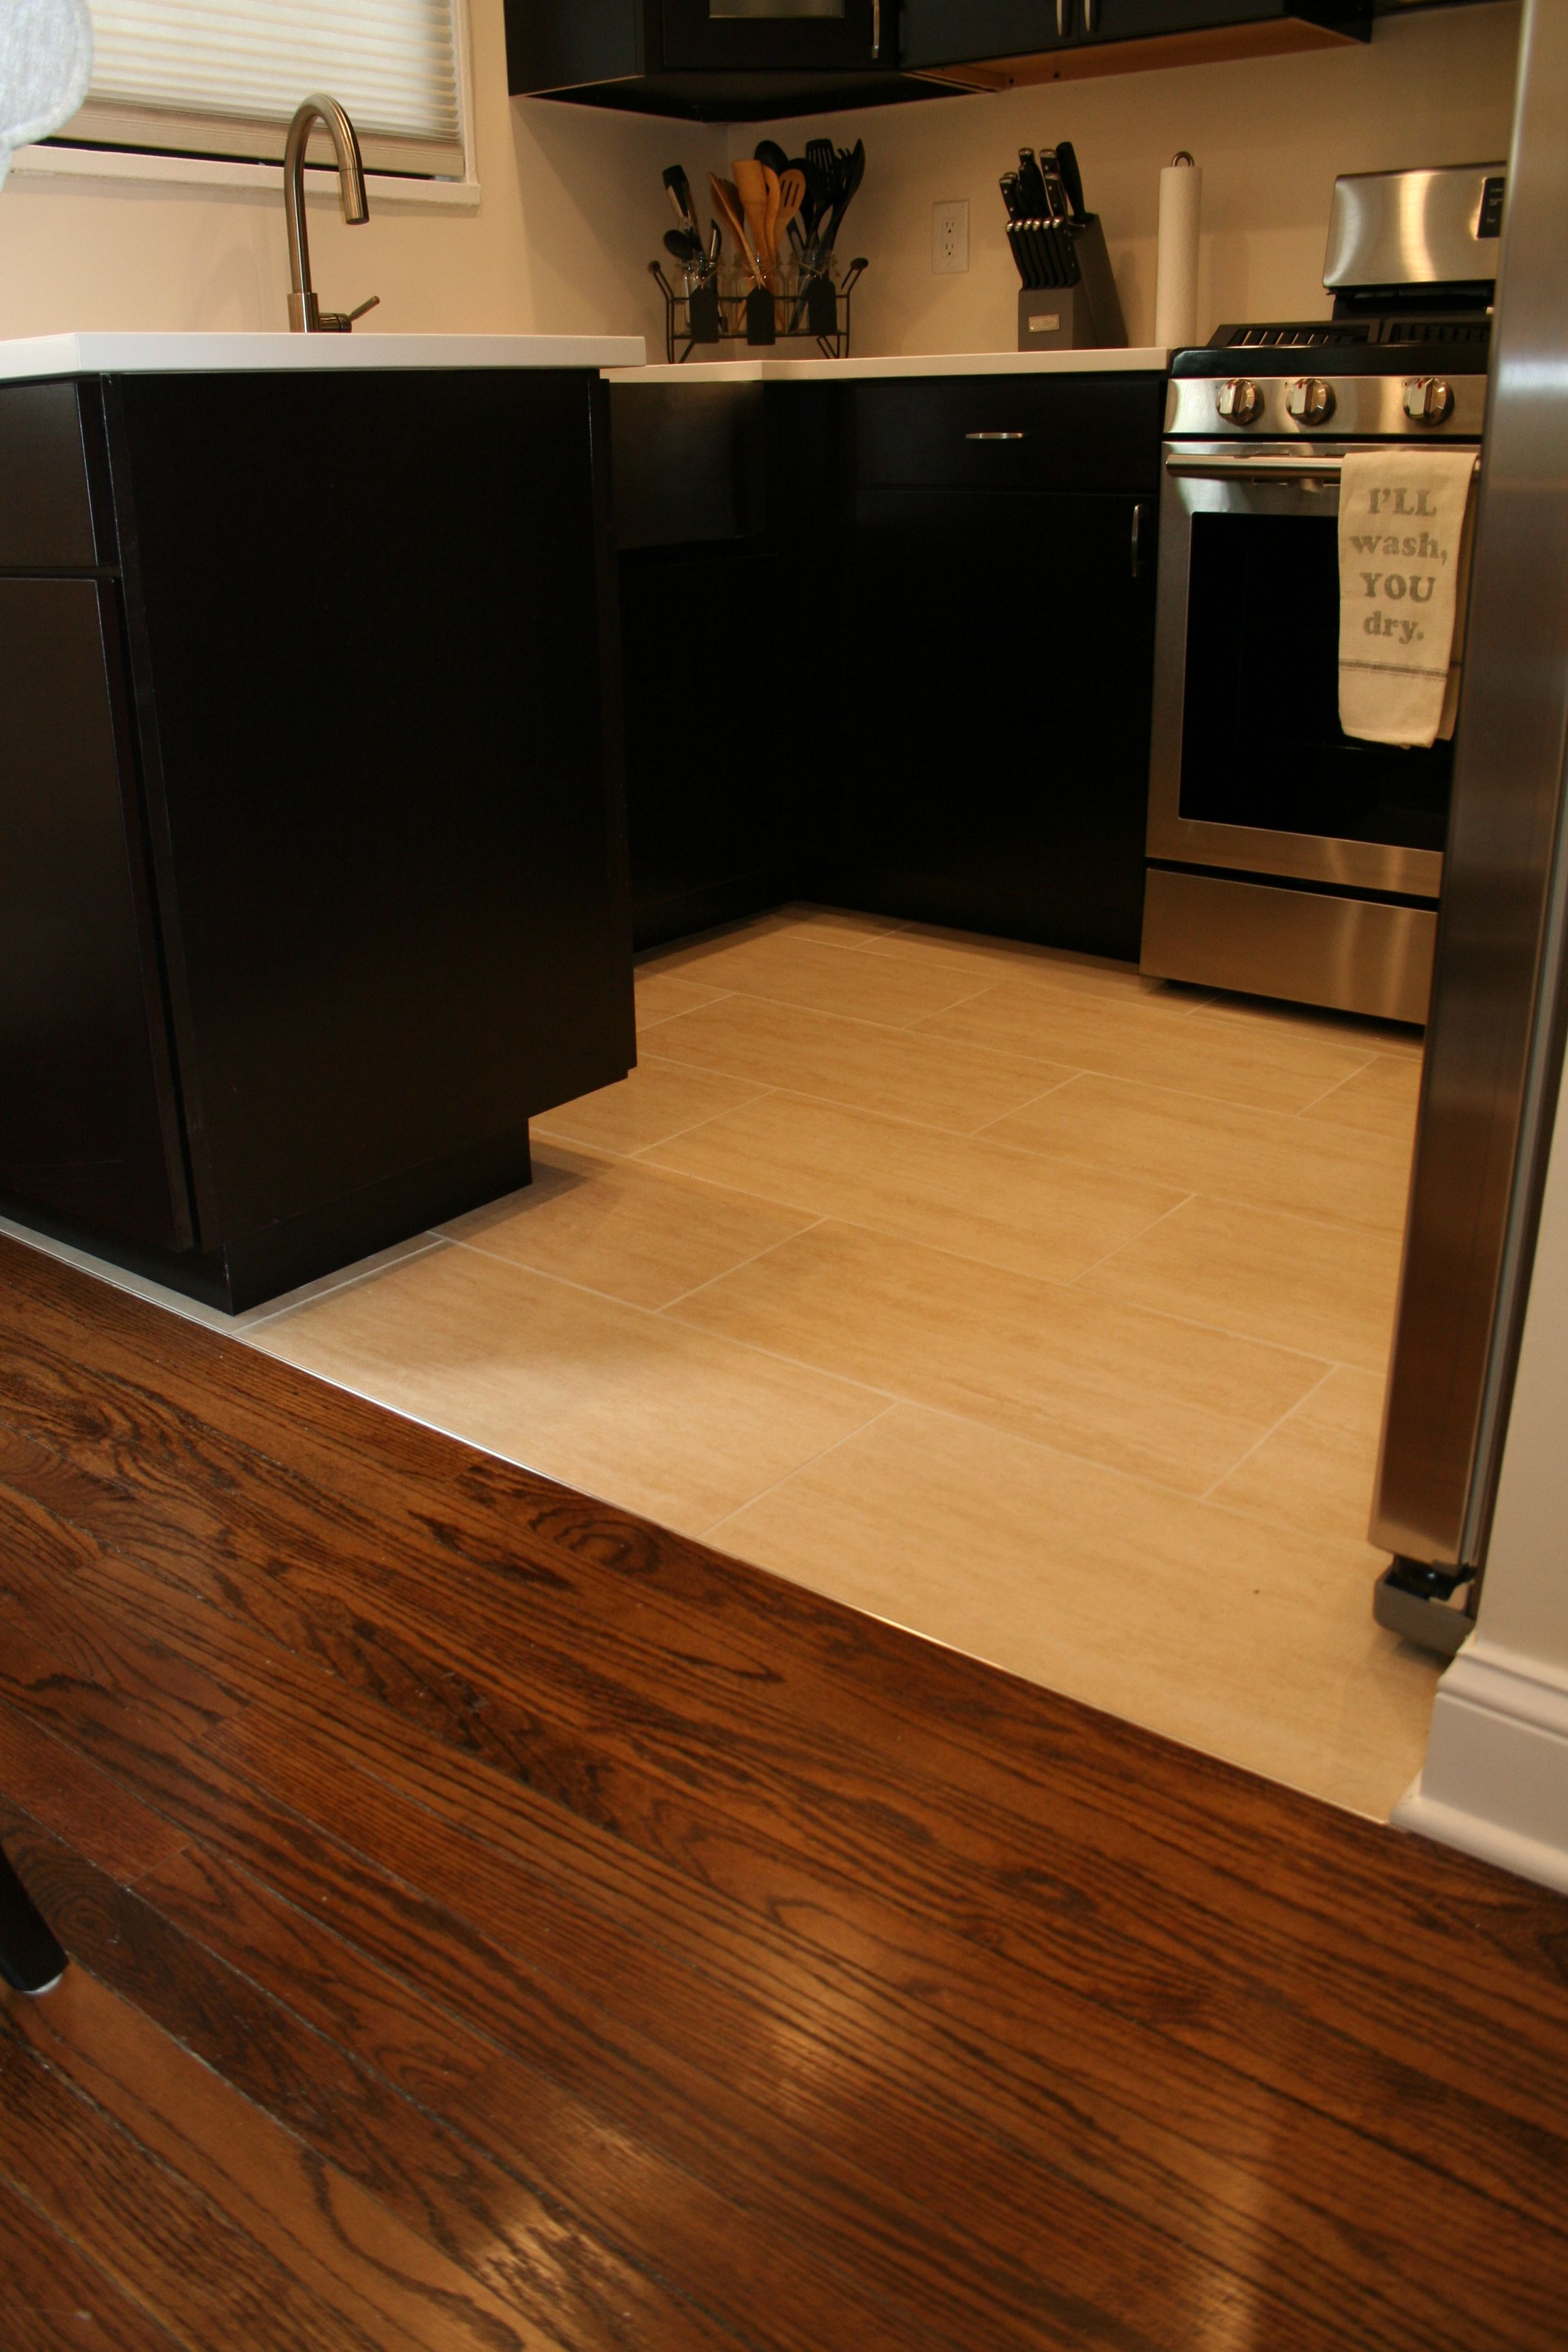 shaw bamboo hardwood flooring of pin by kabinet king on our work pinterest flooring tiles and pertaining to dark wood floors beautiful dark wood floors love the dark bamboo floors and pewter walls